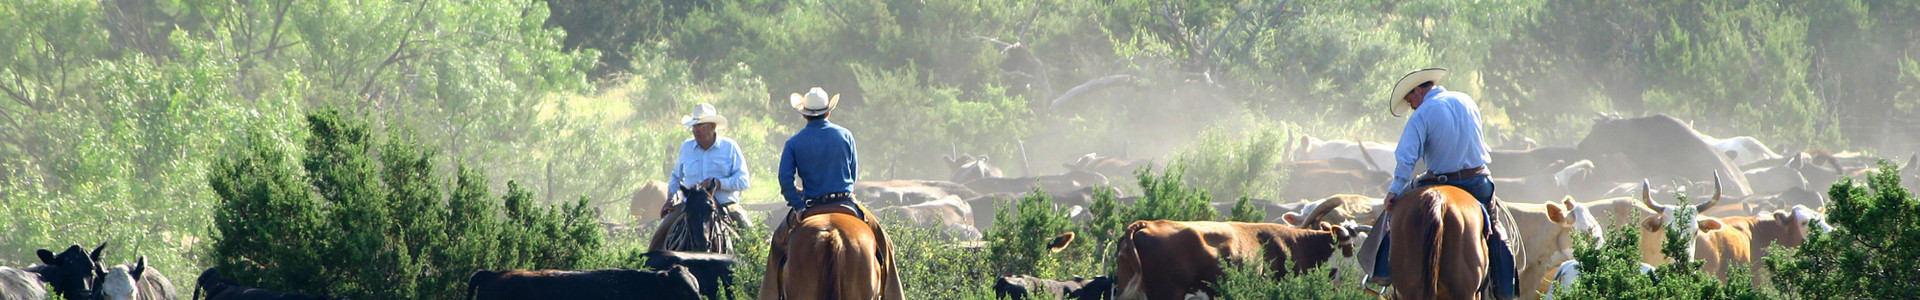 Florida group travel couldn't be easier than at Westgate River Ranch Resort & Rodeo, which boasts a wide variety of flexible meeting and banquet space, making it the ideal locale for your group.